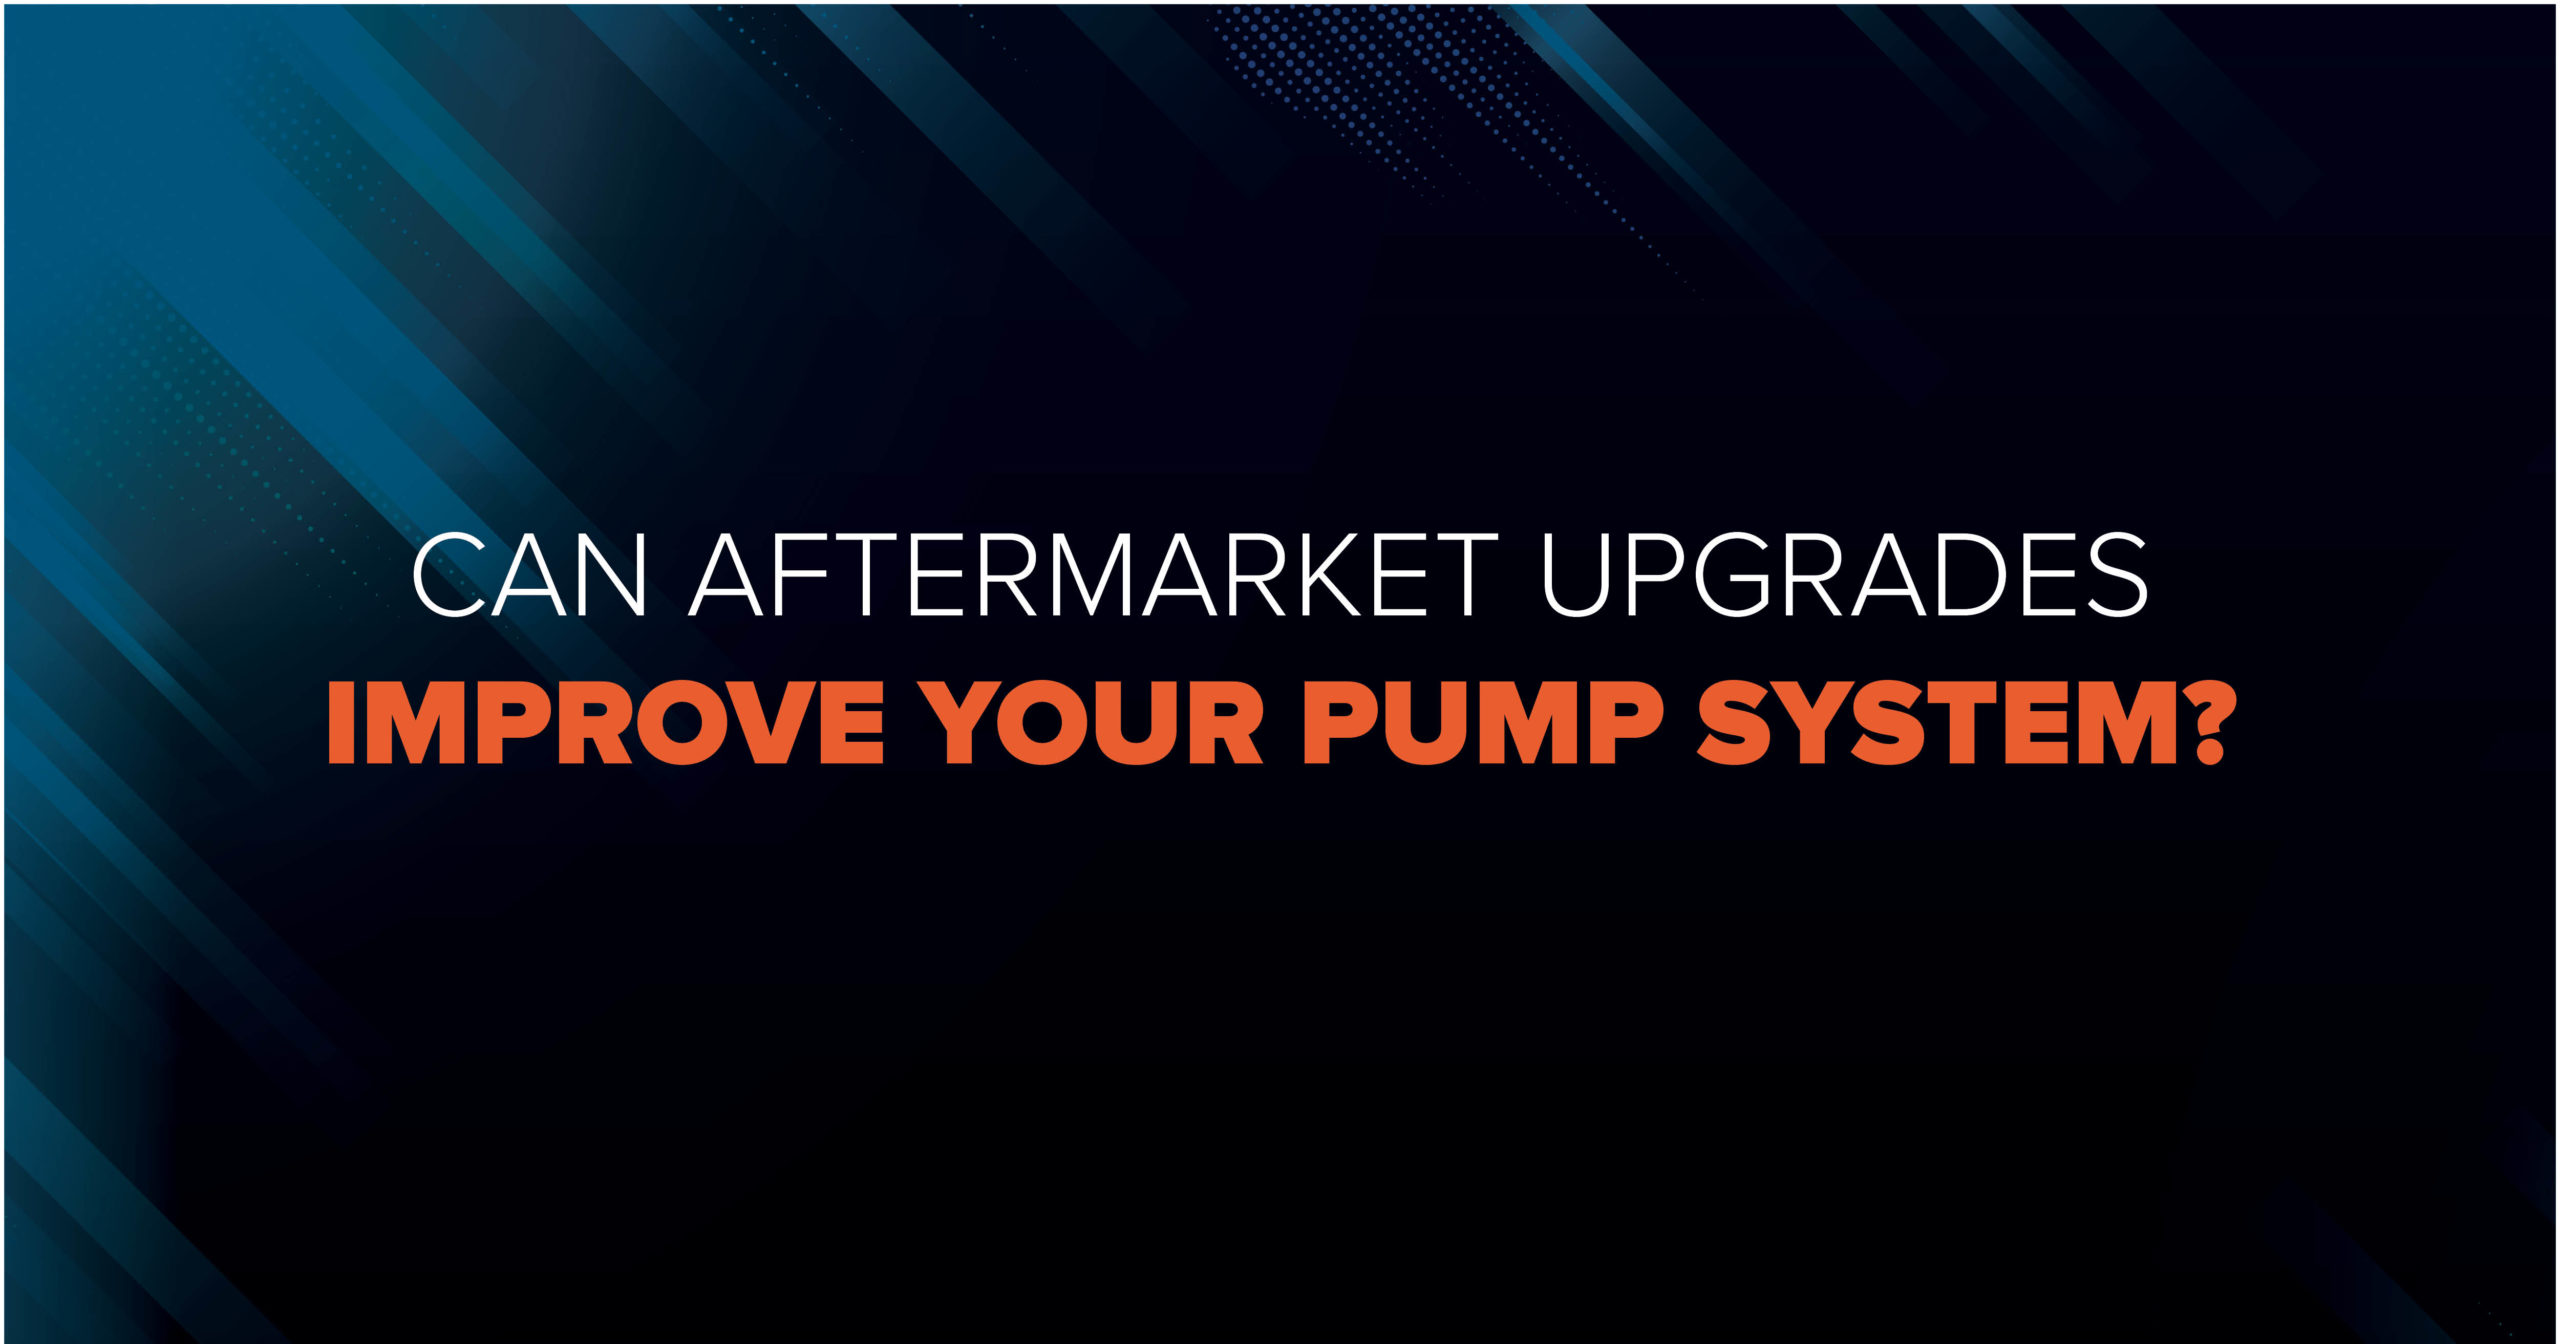 Can Aftermarket Upgrades Improve Your Pump System?